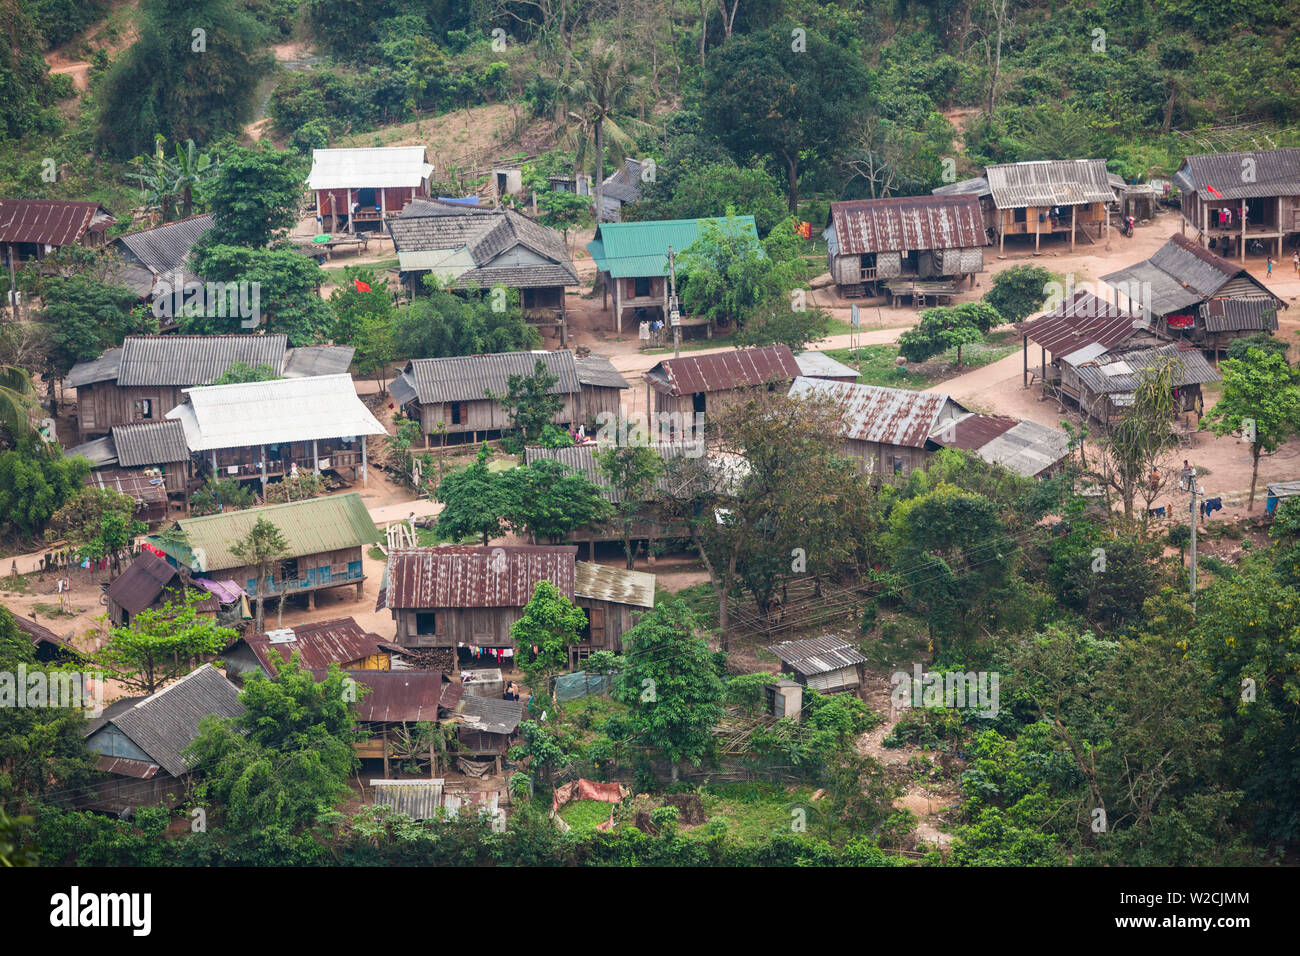 Vietnam, DMZ Area, Quang Tri Province, Cua Valley, elevated view of indigenous Montagnard people village - Stock Image